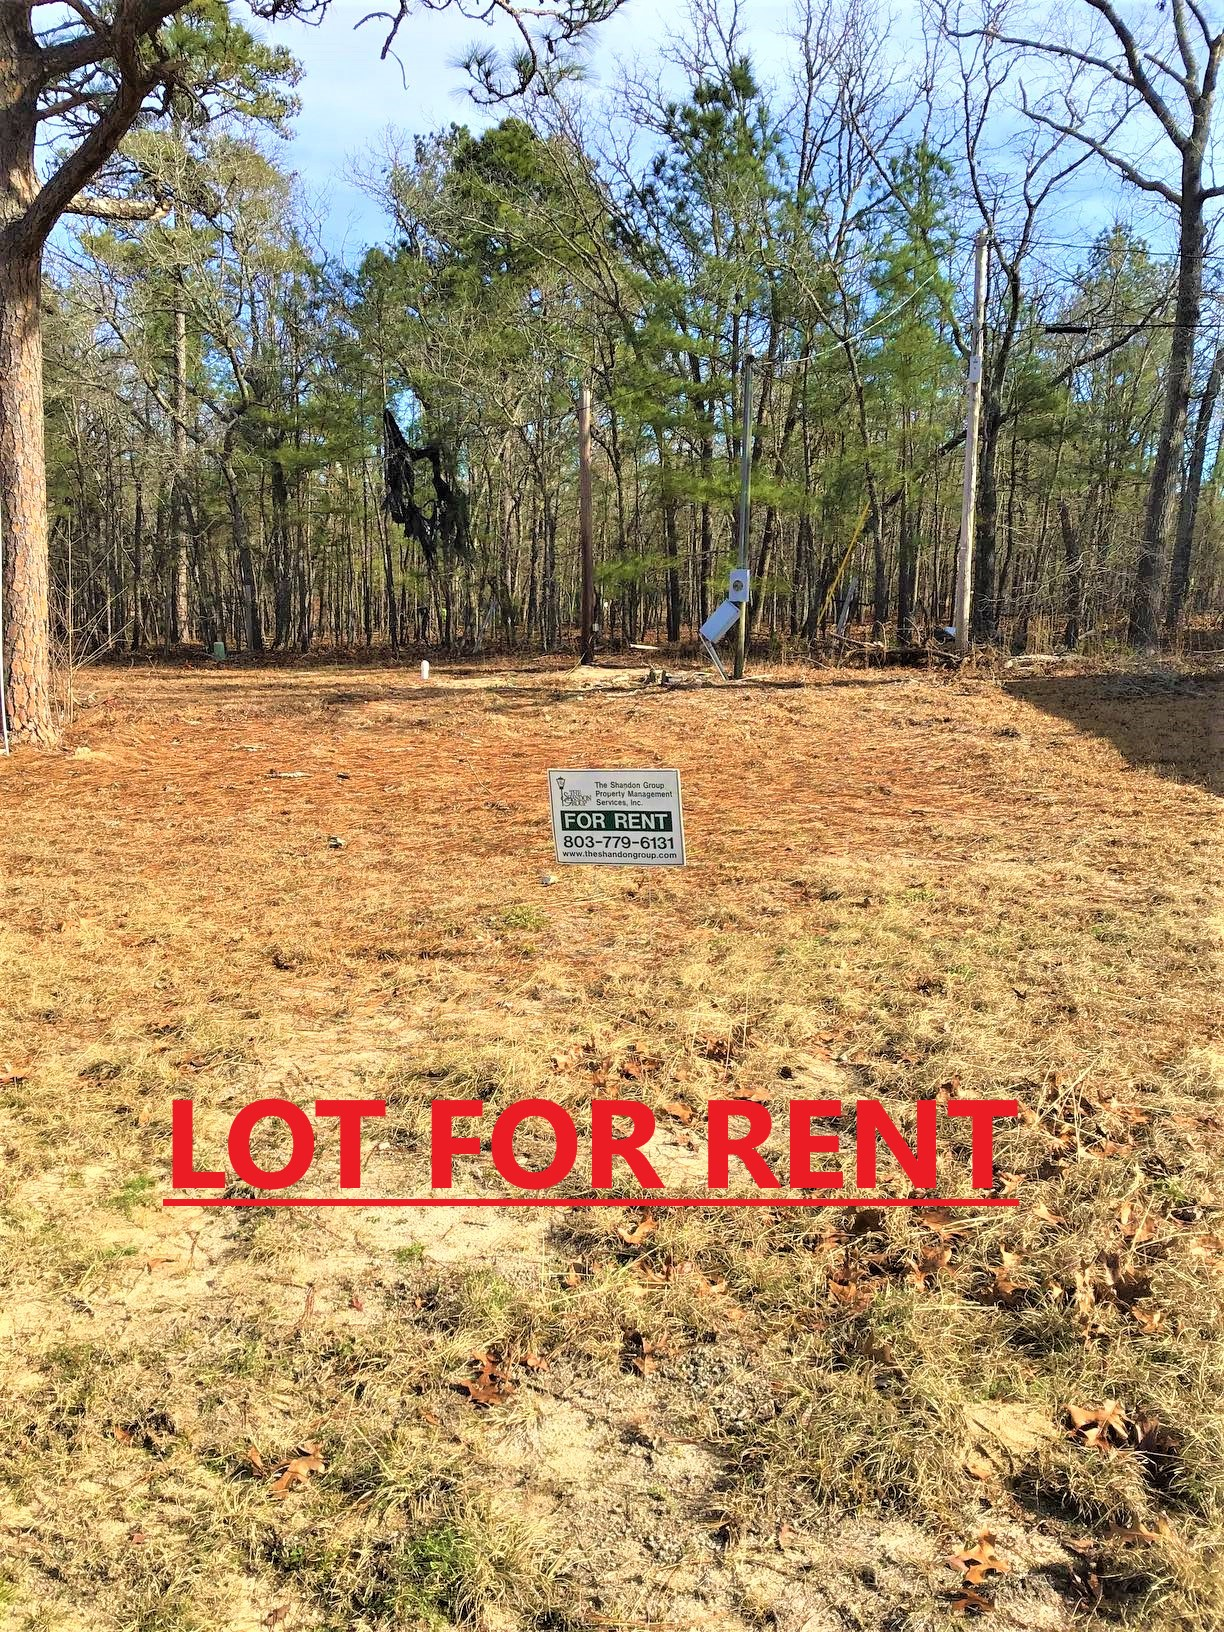 Emory Road 236-18, ,Mobile Home Lot,For Rent,236-18,1451